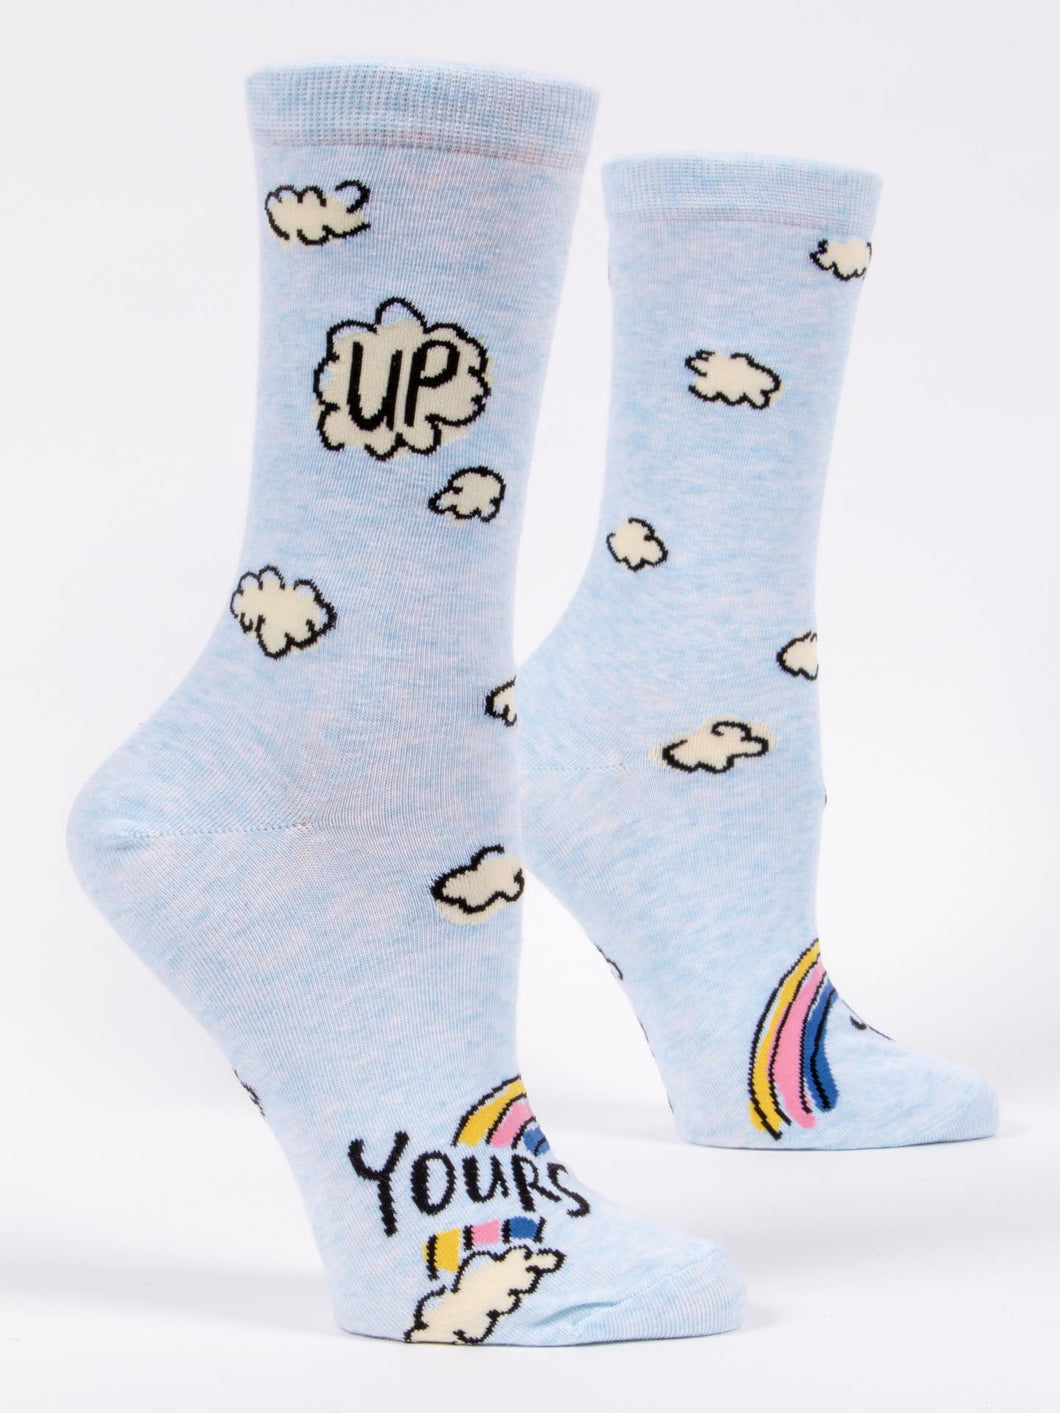 blue q Crew Socks -Up Yours